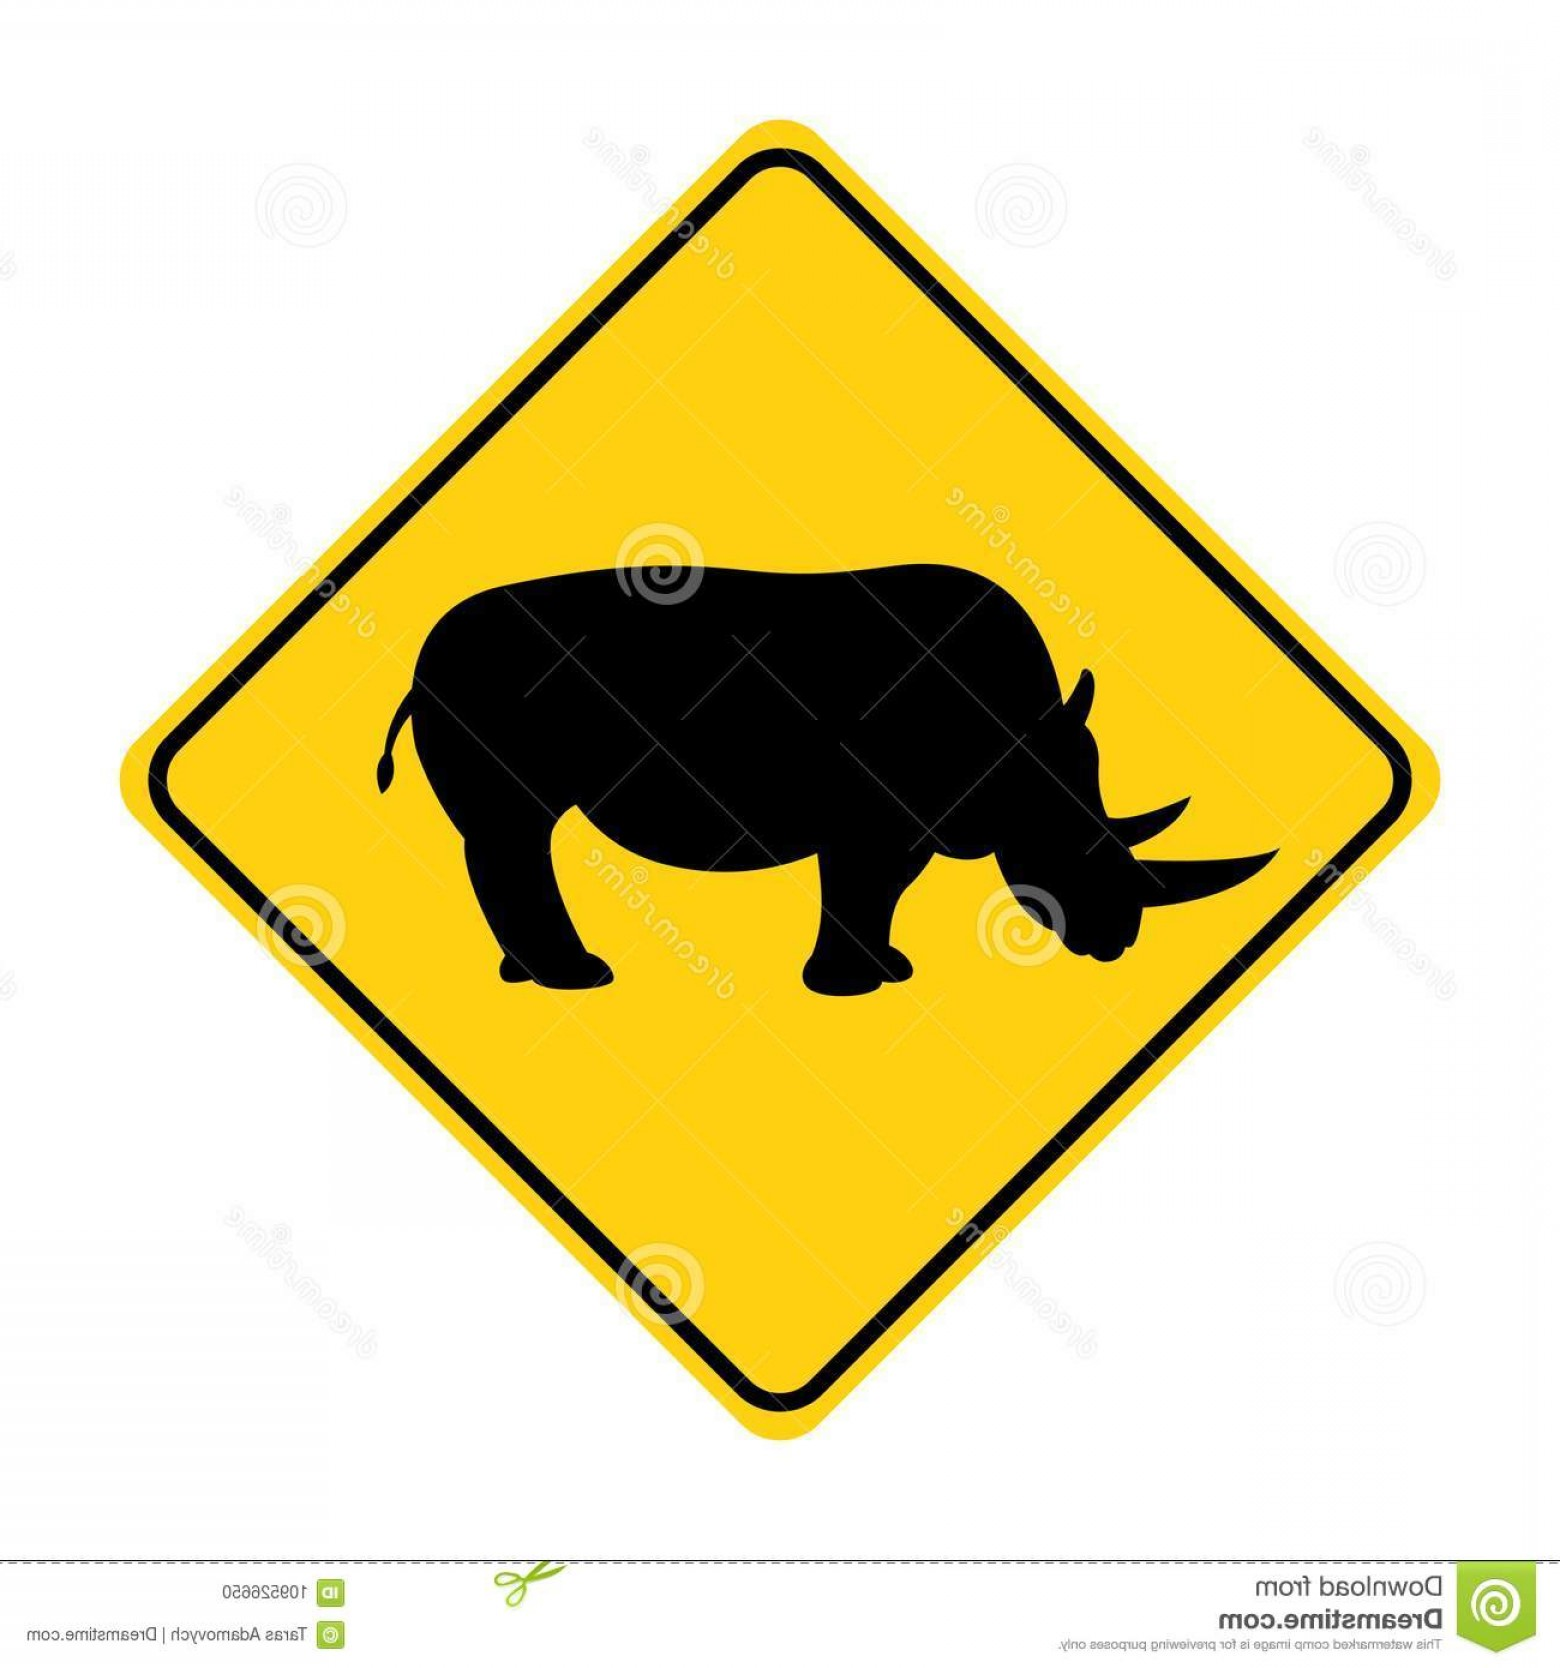 Road Sign Silhouette Vector Bear: Rhino Silhouette Animal Traffic Sign Yellow Vector Illustration Rhino Silhouette Animal Traffic Sign Yellow Vector Image